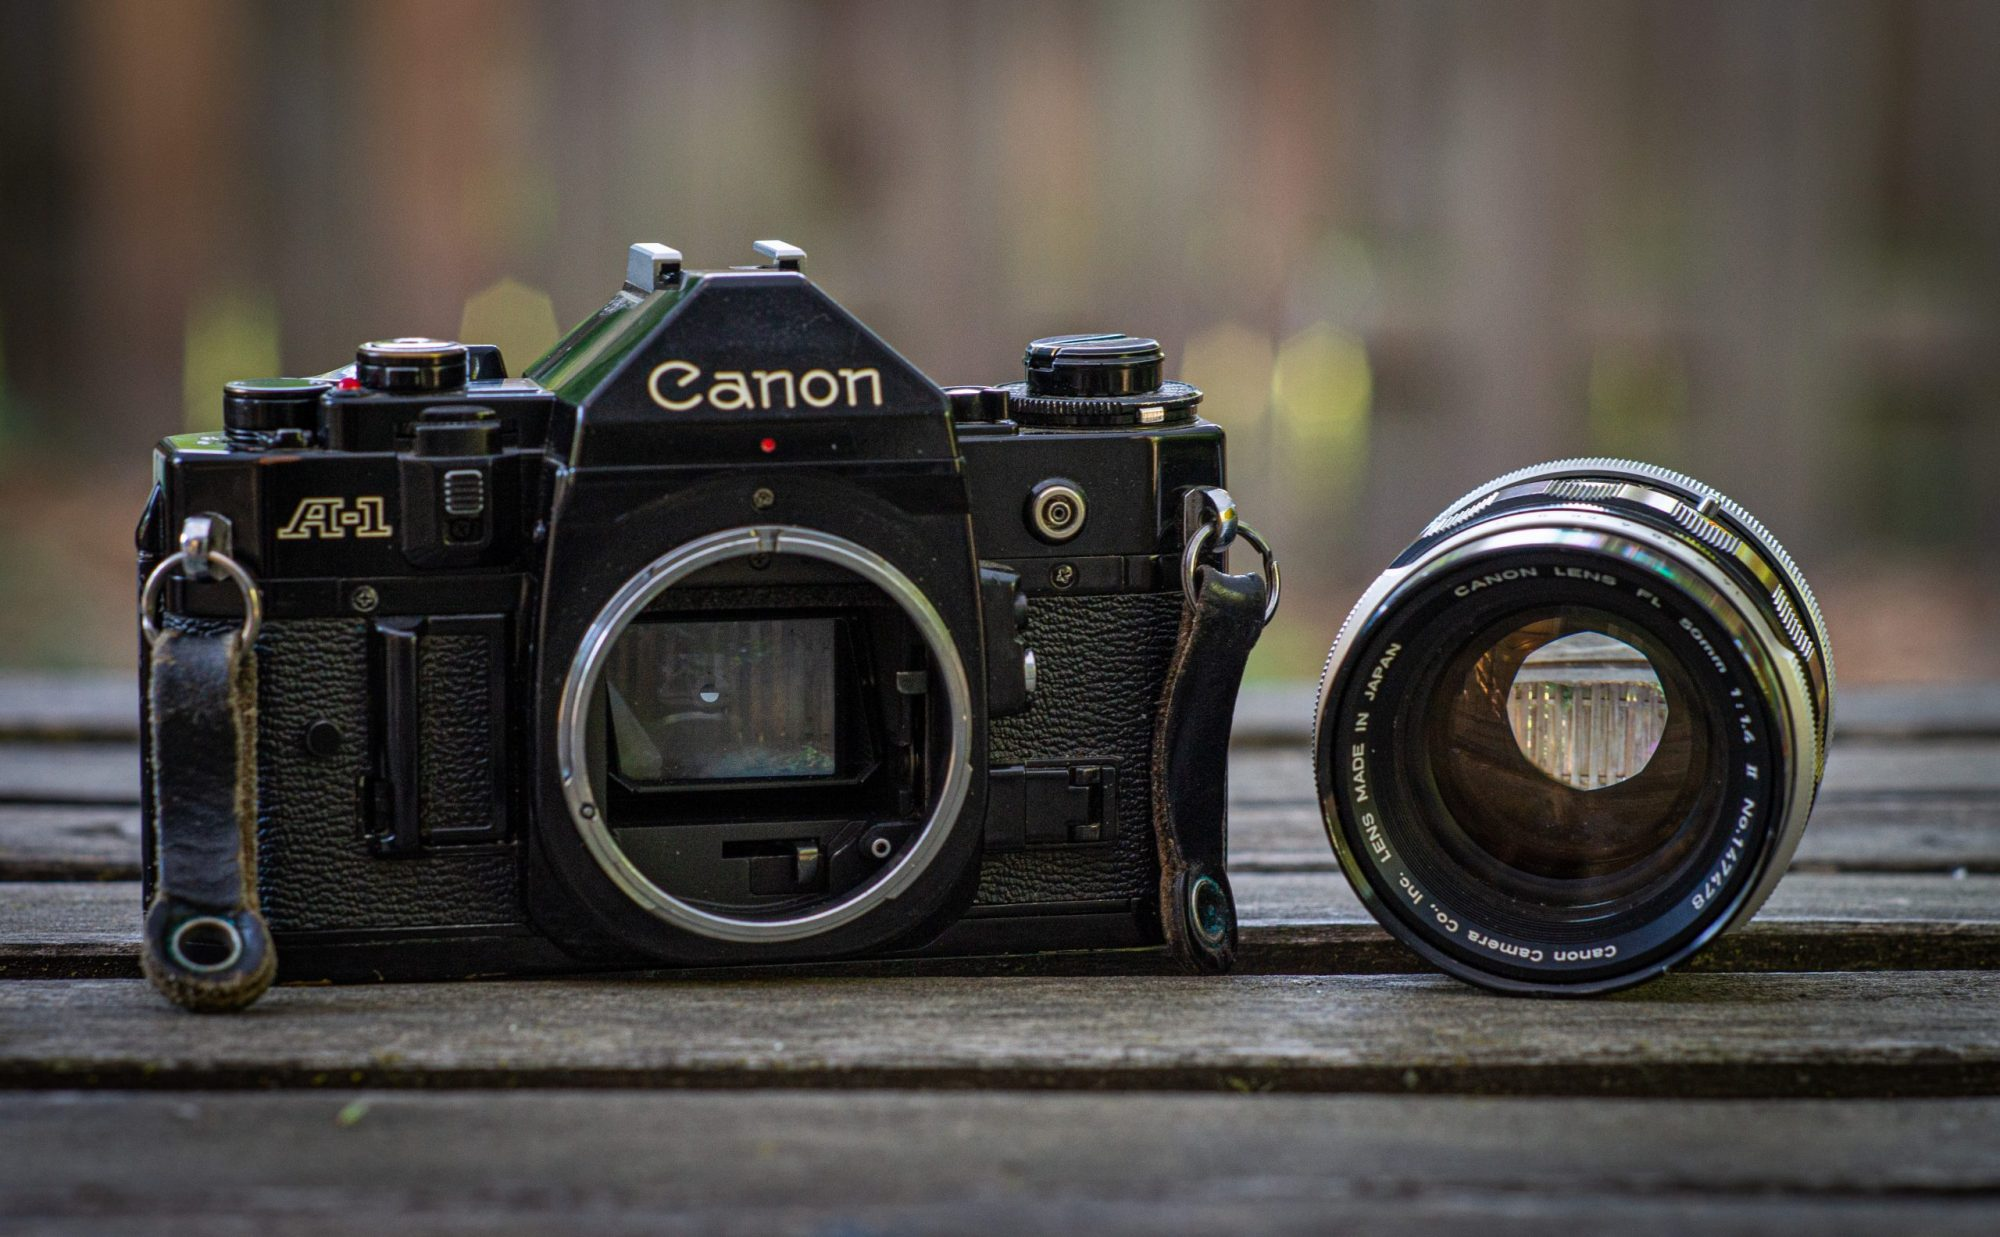 Canon with lens removed